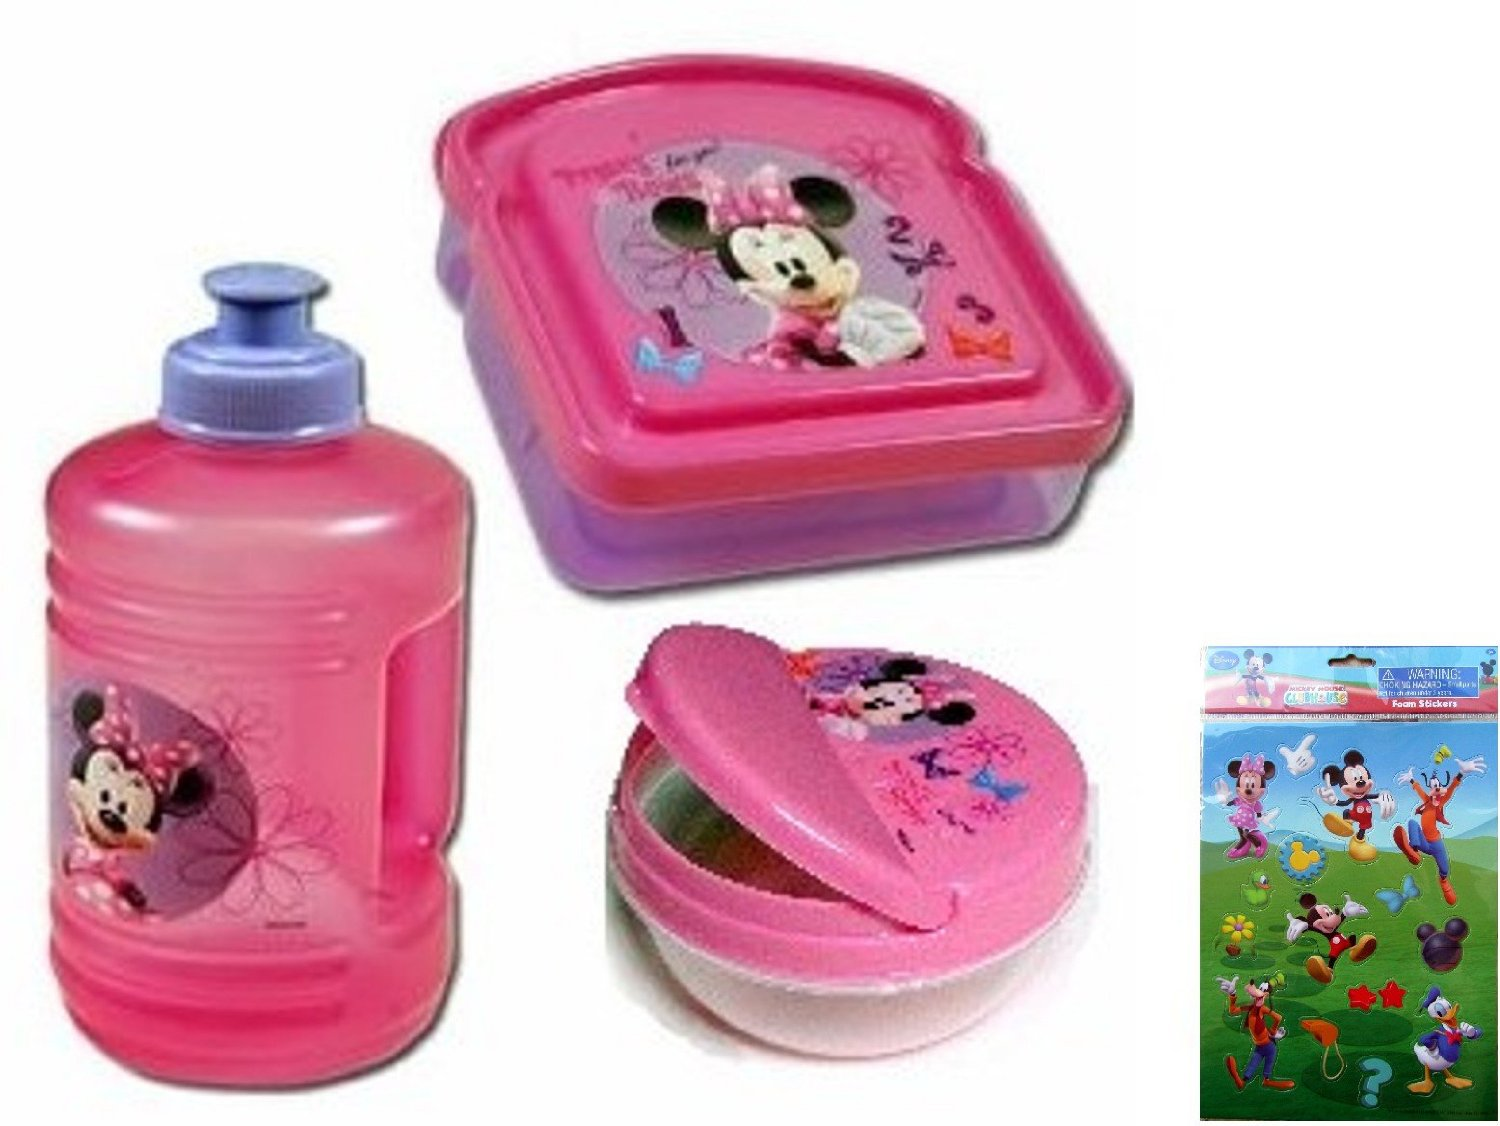 Minnie Mouse Water Bottle, Minnie Mouse Sandwich Keeper, and Minnie Mouse Snack Container - 3 Item Minnie Mouse Boutique Gift Set with a Winnie Pooh Sticker Set (4 Sheets) - All Are BPA Free and Non-toxic